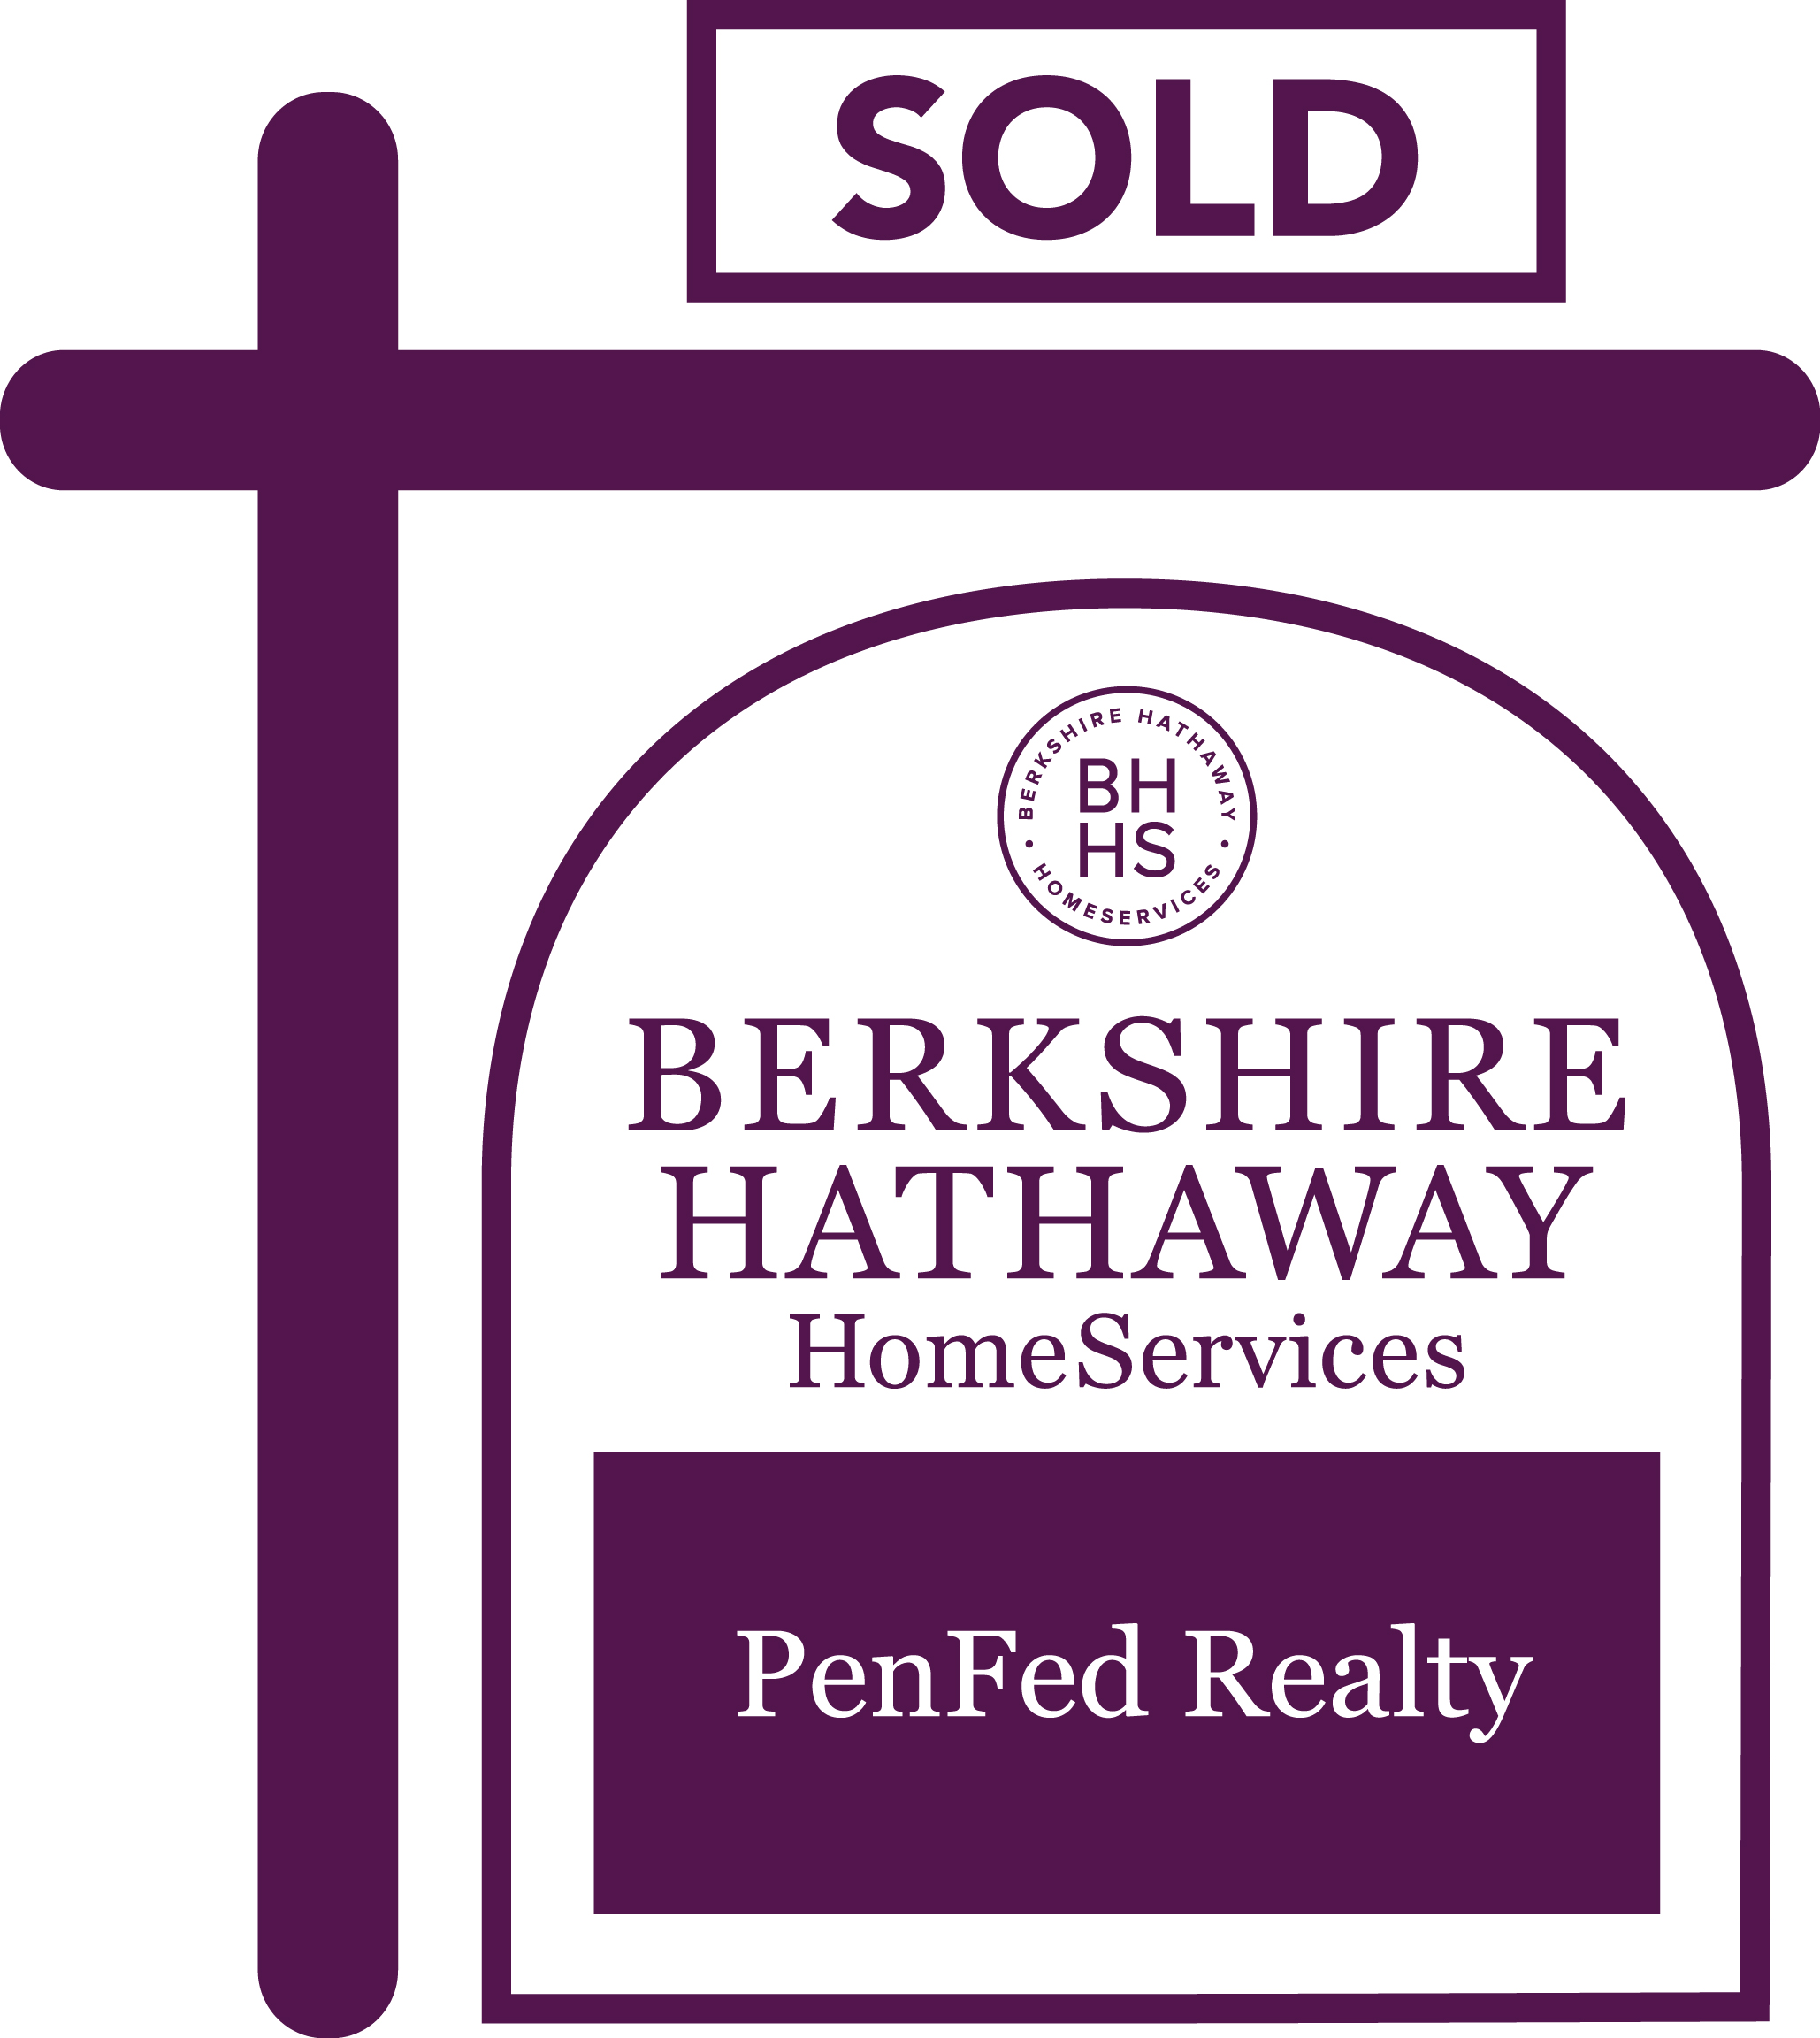 Prudential Penfed Realty Joins Berkshire Hathaway Homeservices Real Estate Brokerage Network Berkshire Hathaway Homeservices Penfed Realty Blog